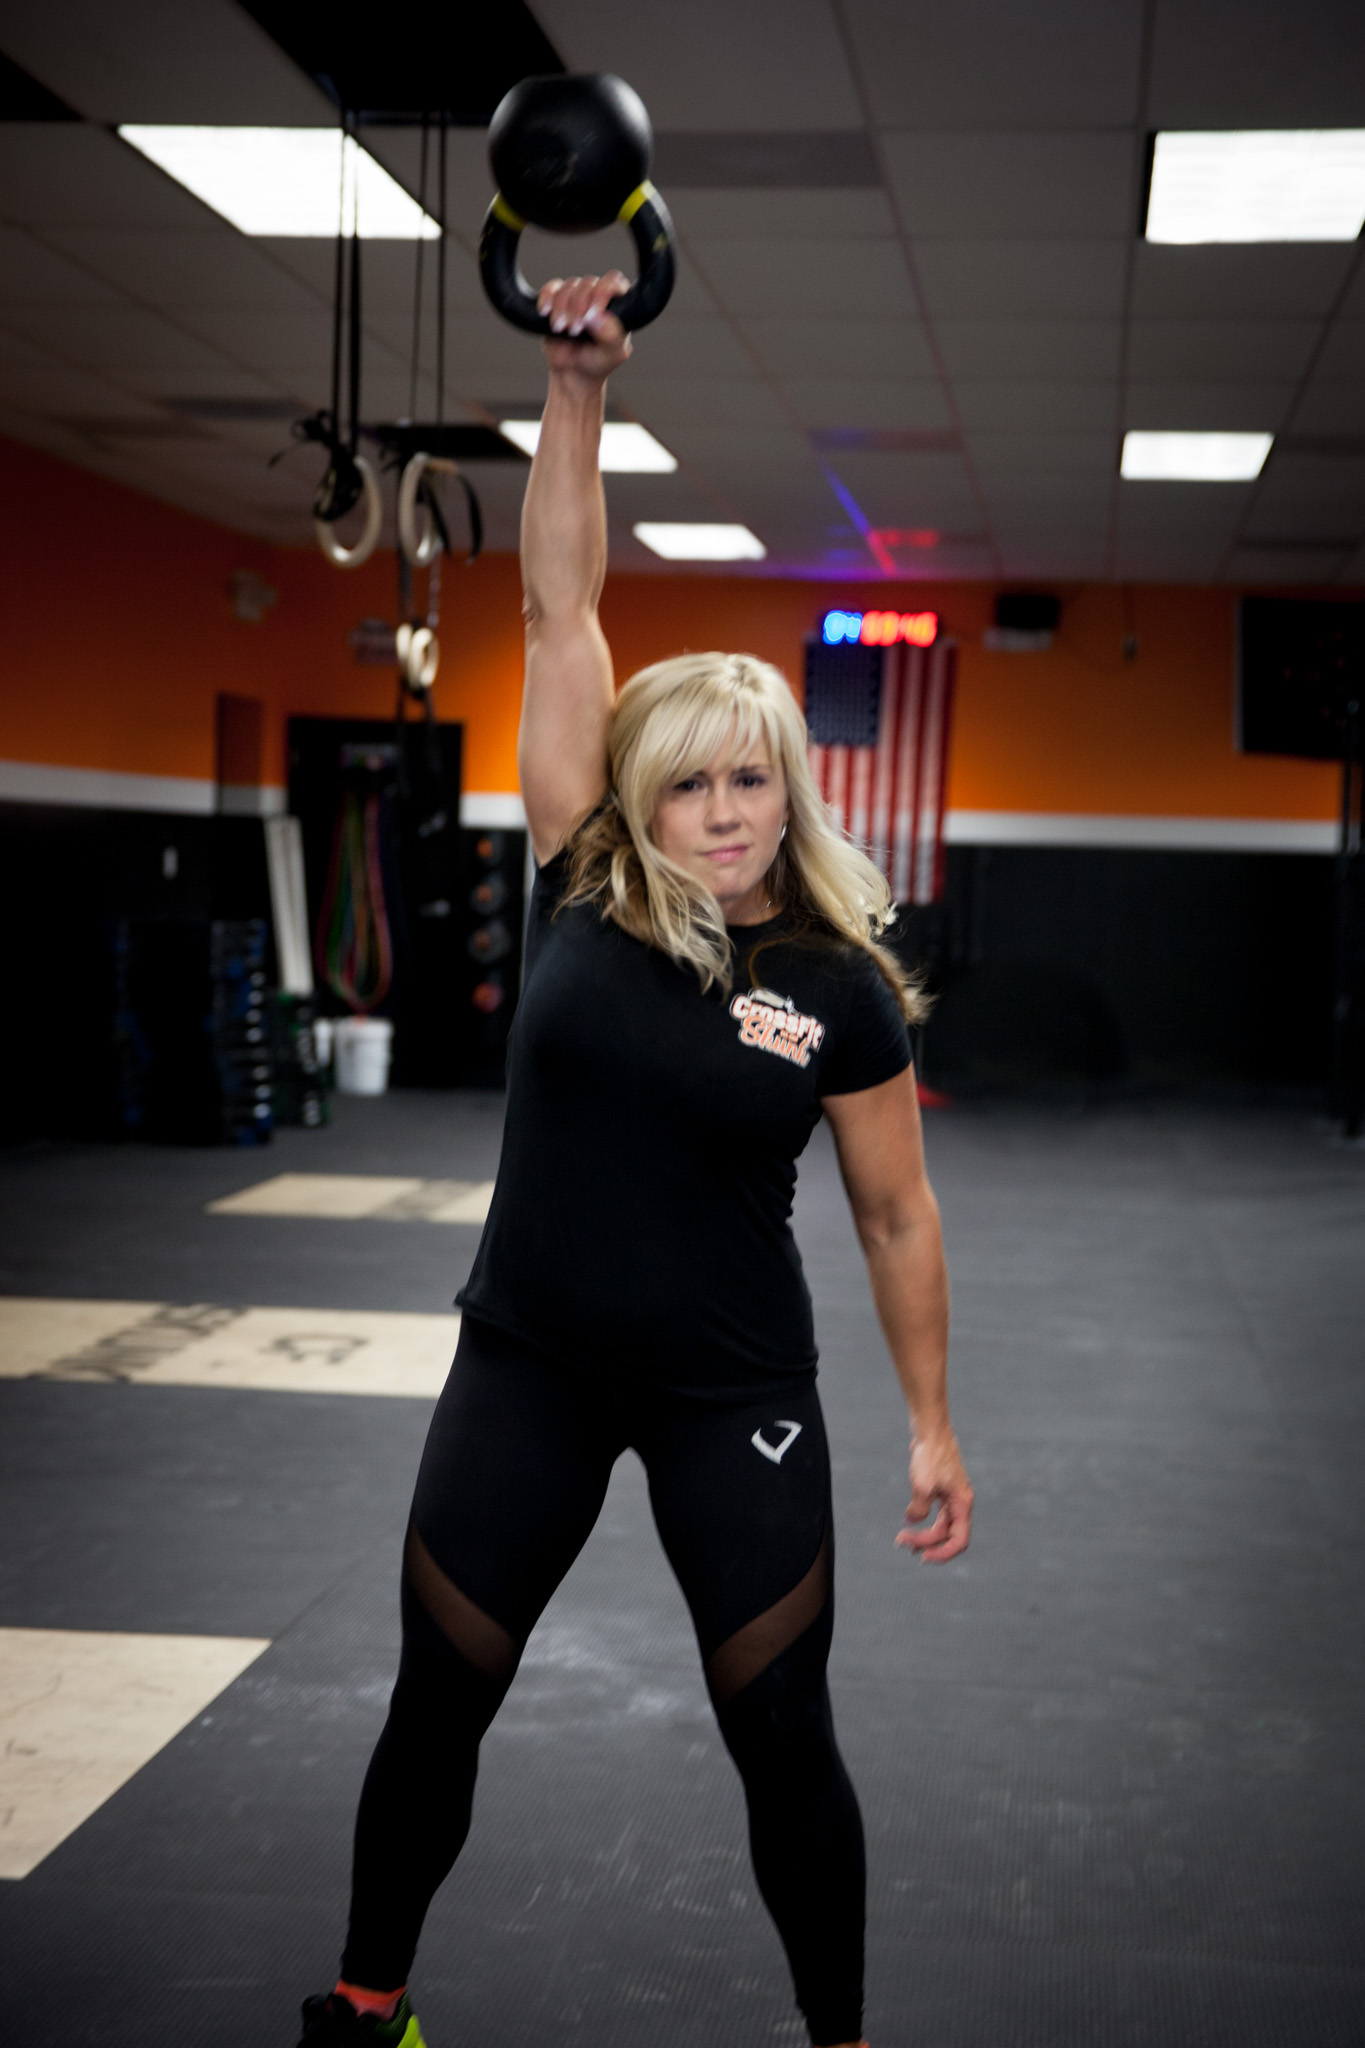 Deb Chase - Founder and CHIEF CoachRead more